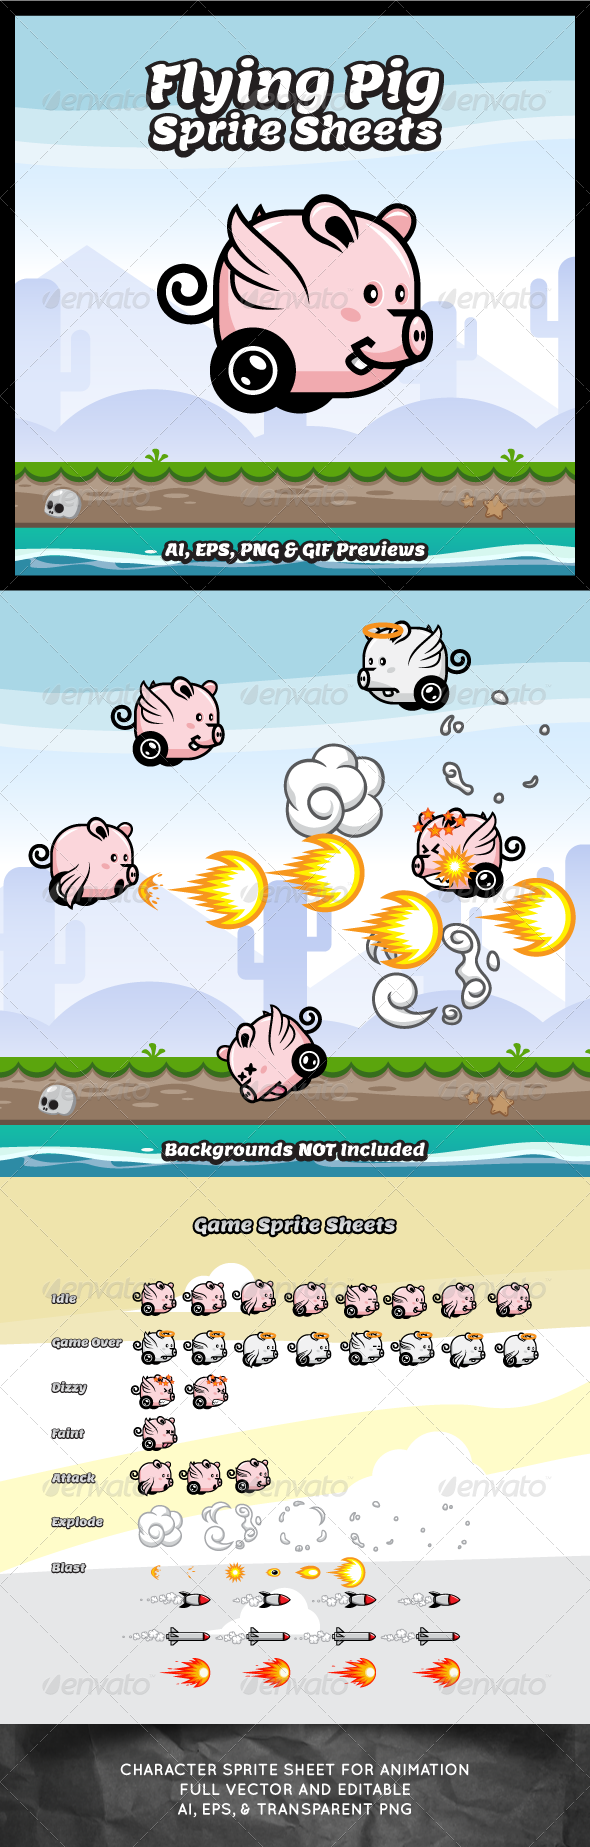 Flying Pig Game Character Sprite Sheets